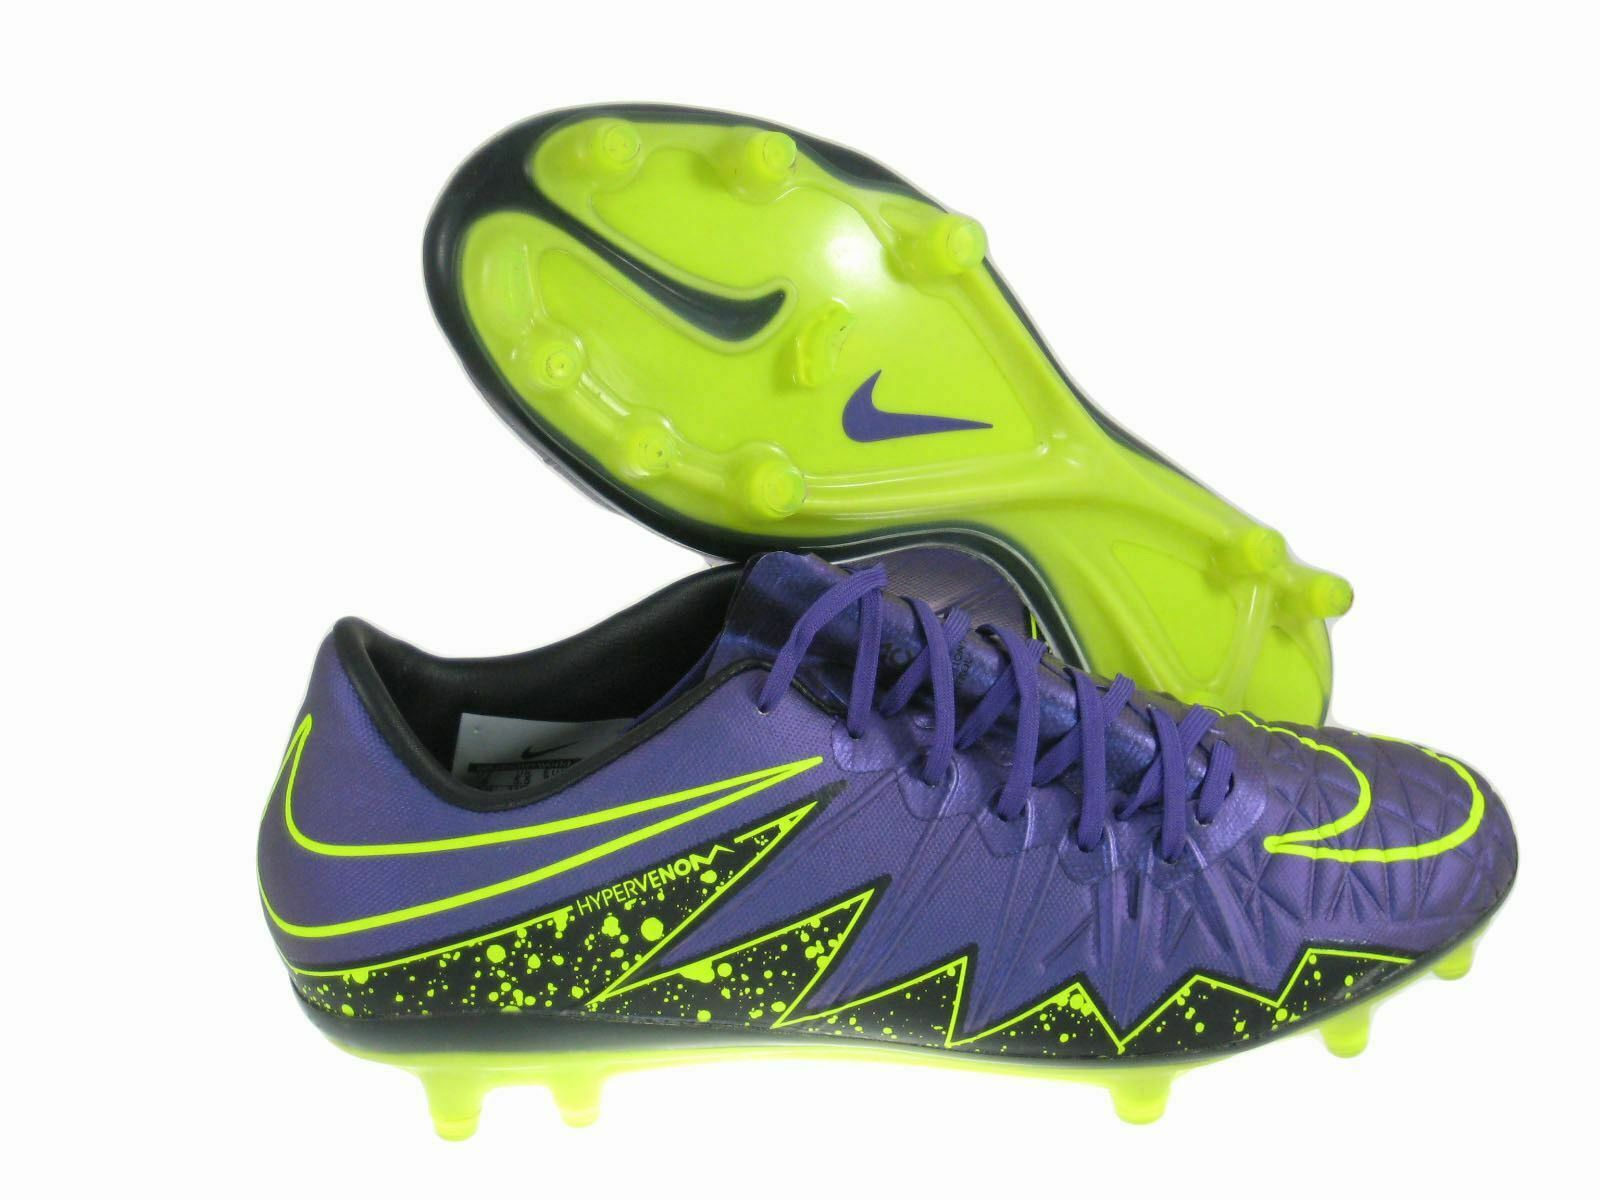 NIKE Men's Soccer Cleats Hypervenom Phinish FG SZ 6 Hyper Grape 749901-550 BOOT